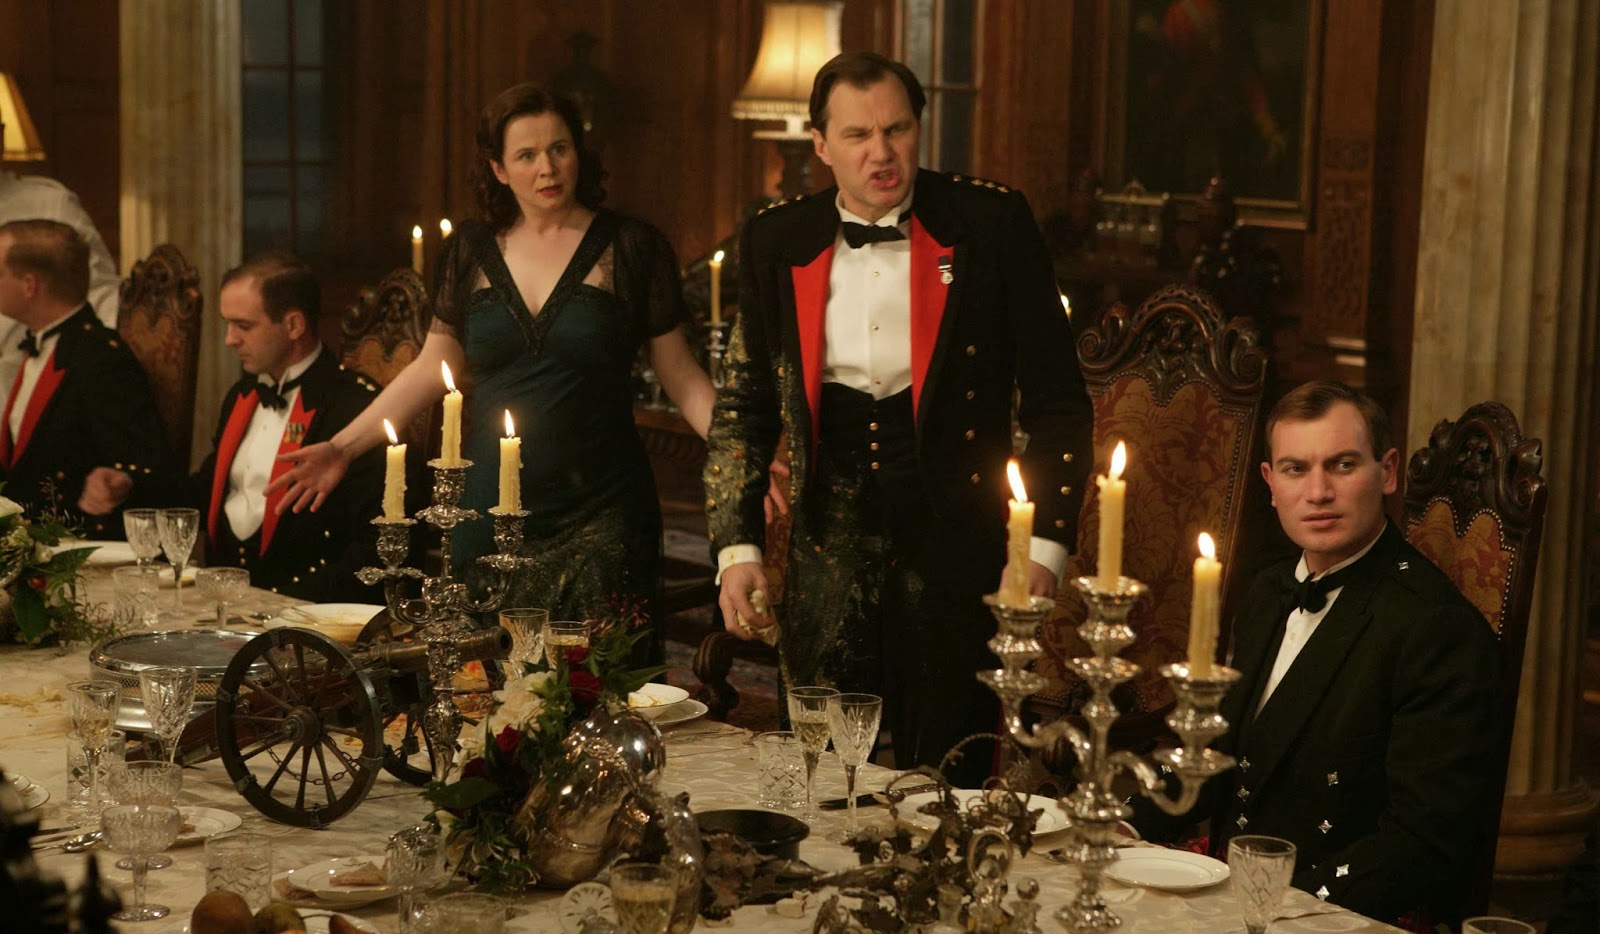 Etiquipedia: The State of British Table Manners, Knives Forks and ...